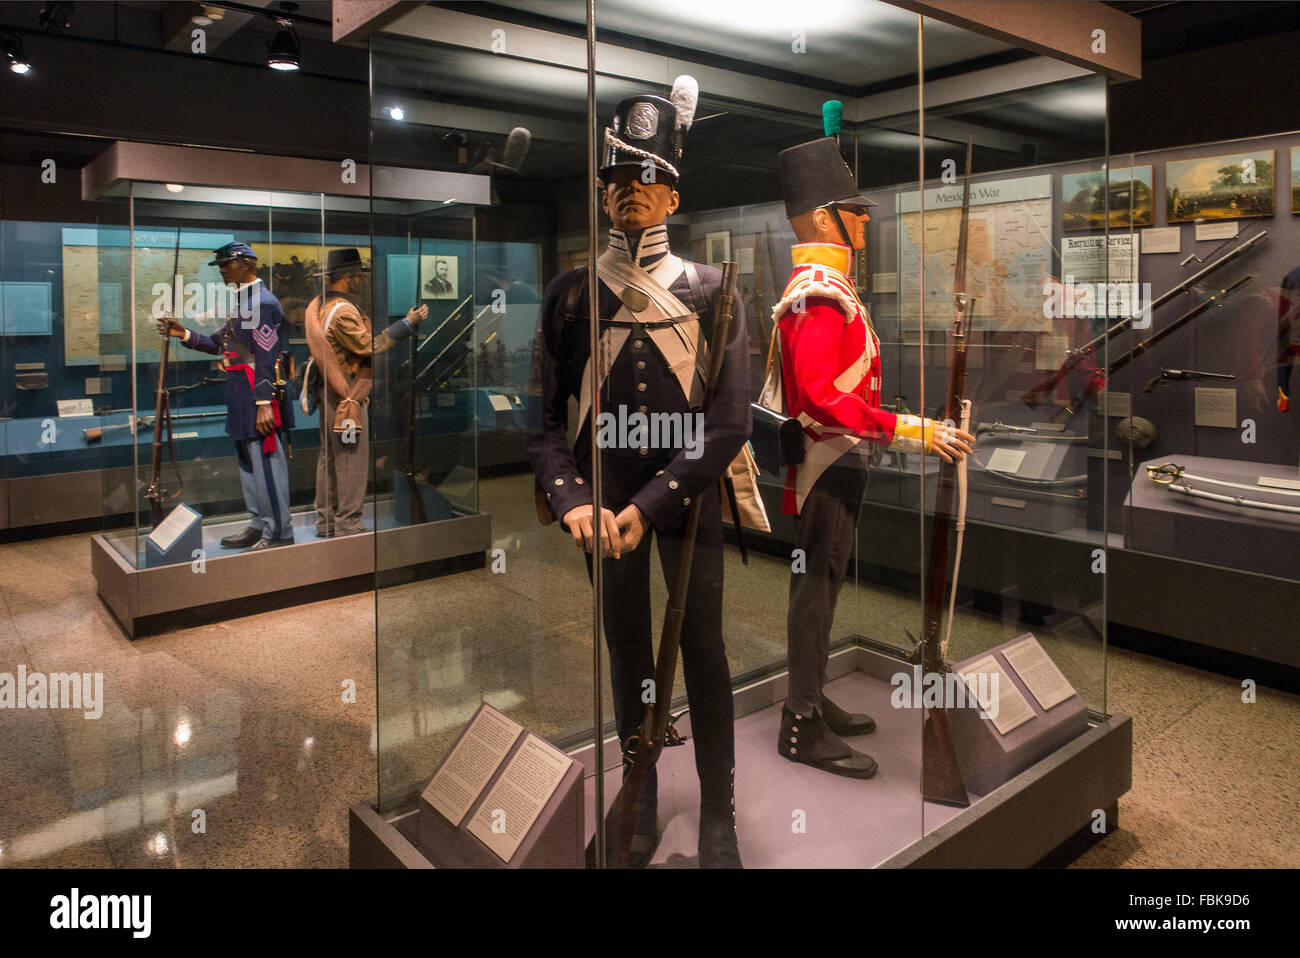 West Point Museum New York - Stock Image